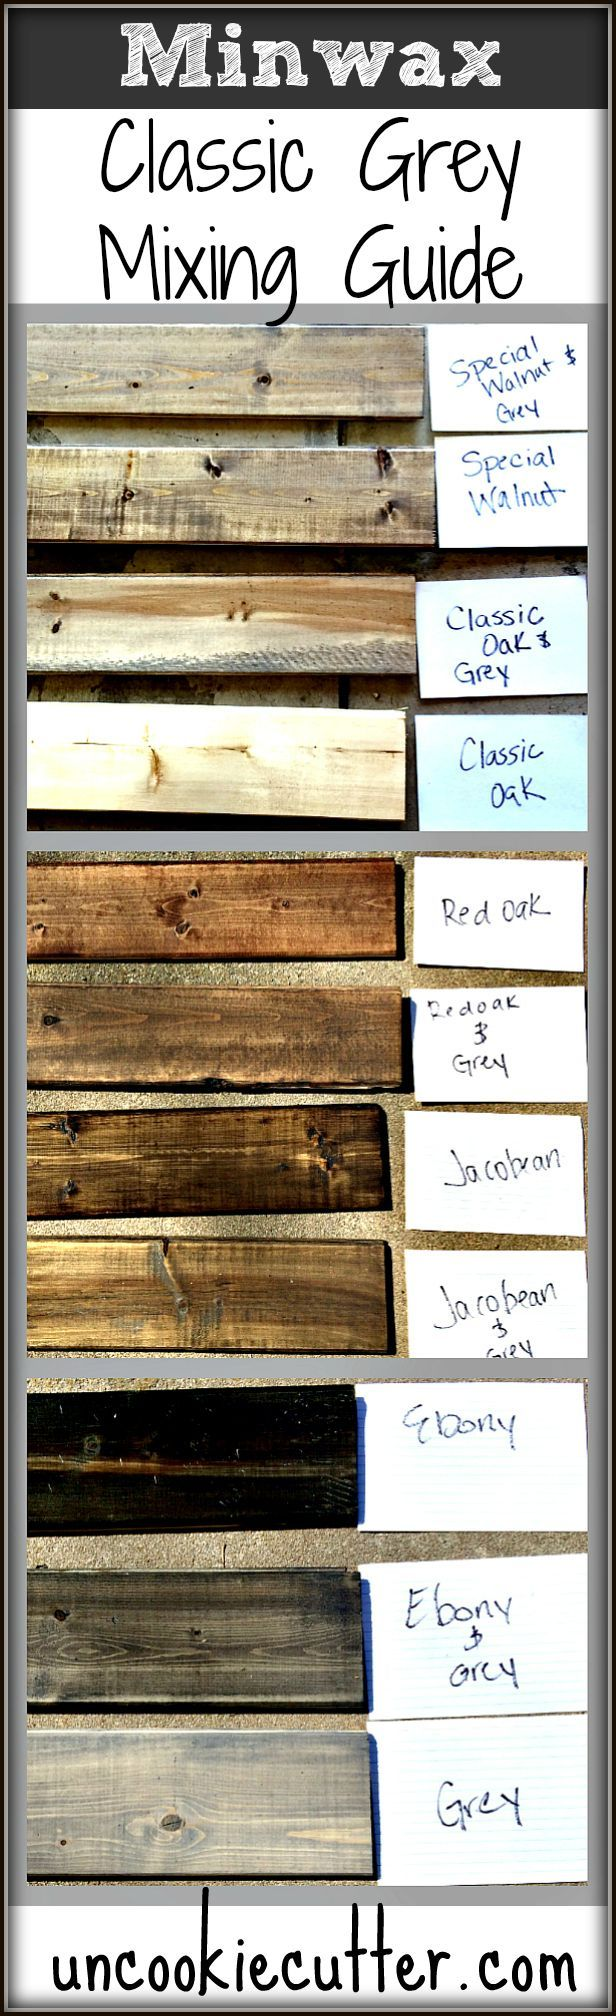 Mixed Wood Wall Easy Cheap Diy Stains Grey And